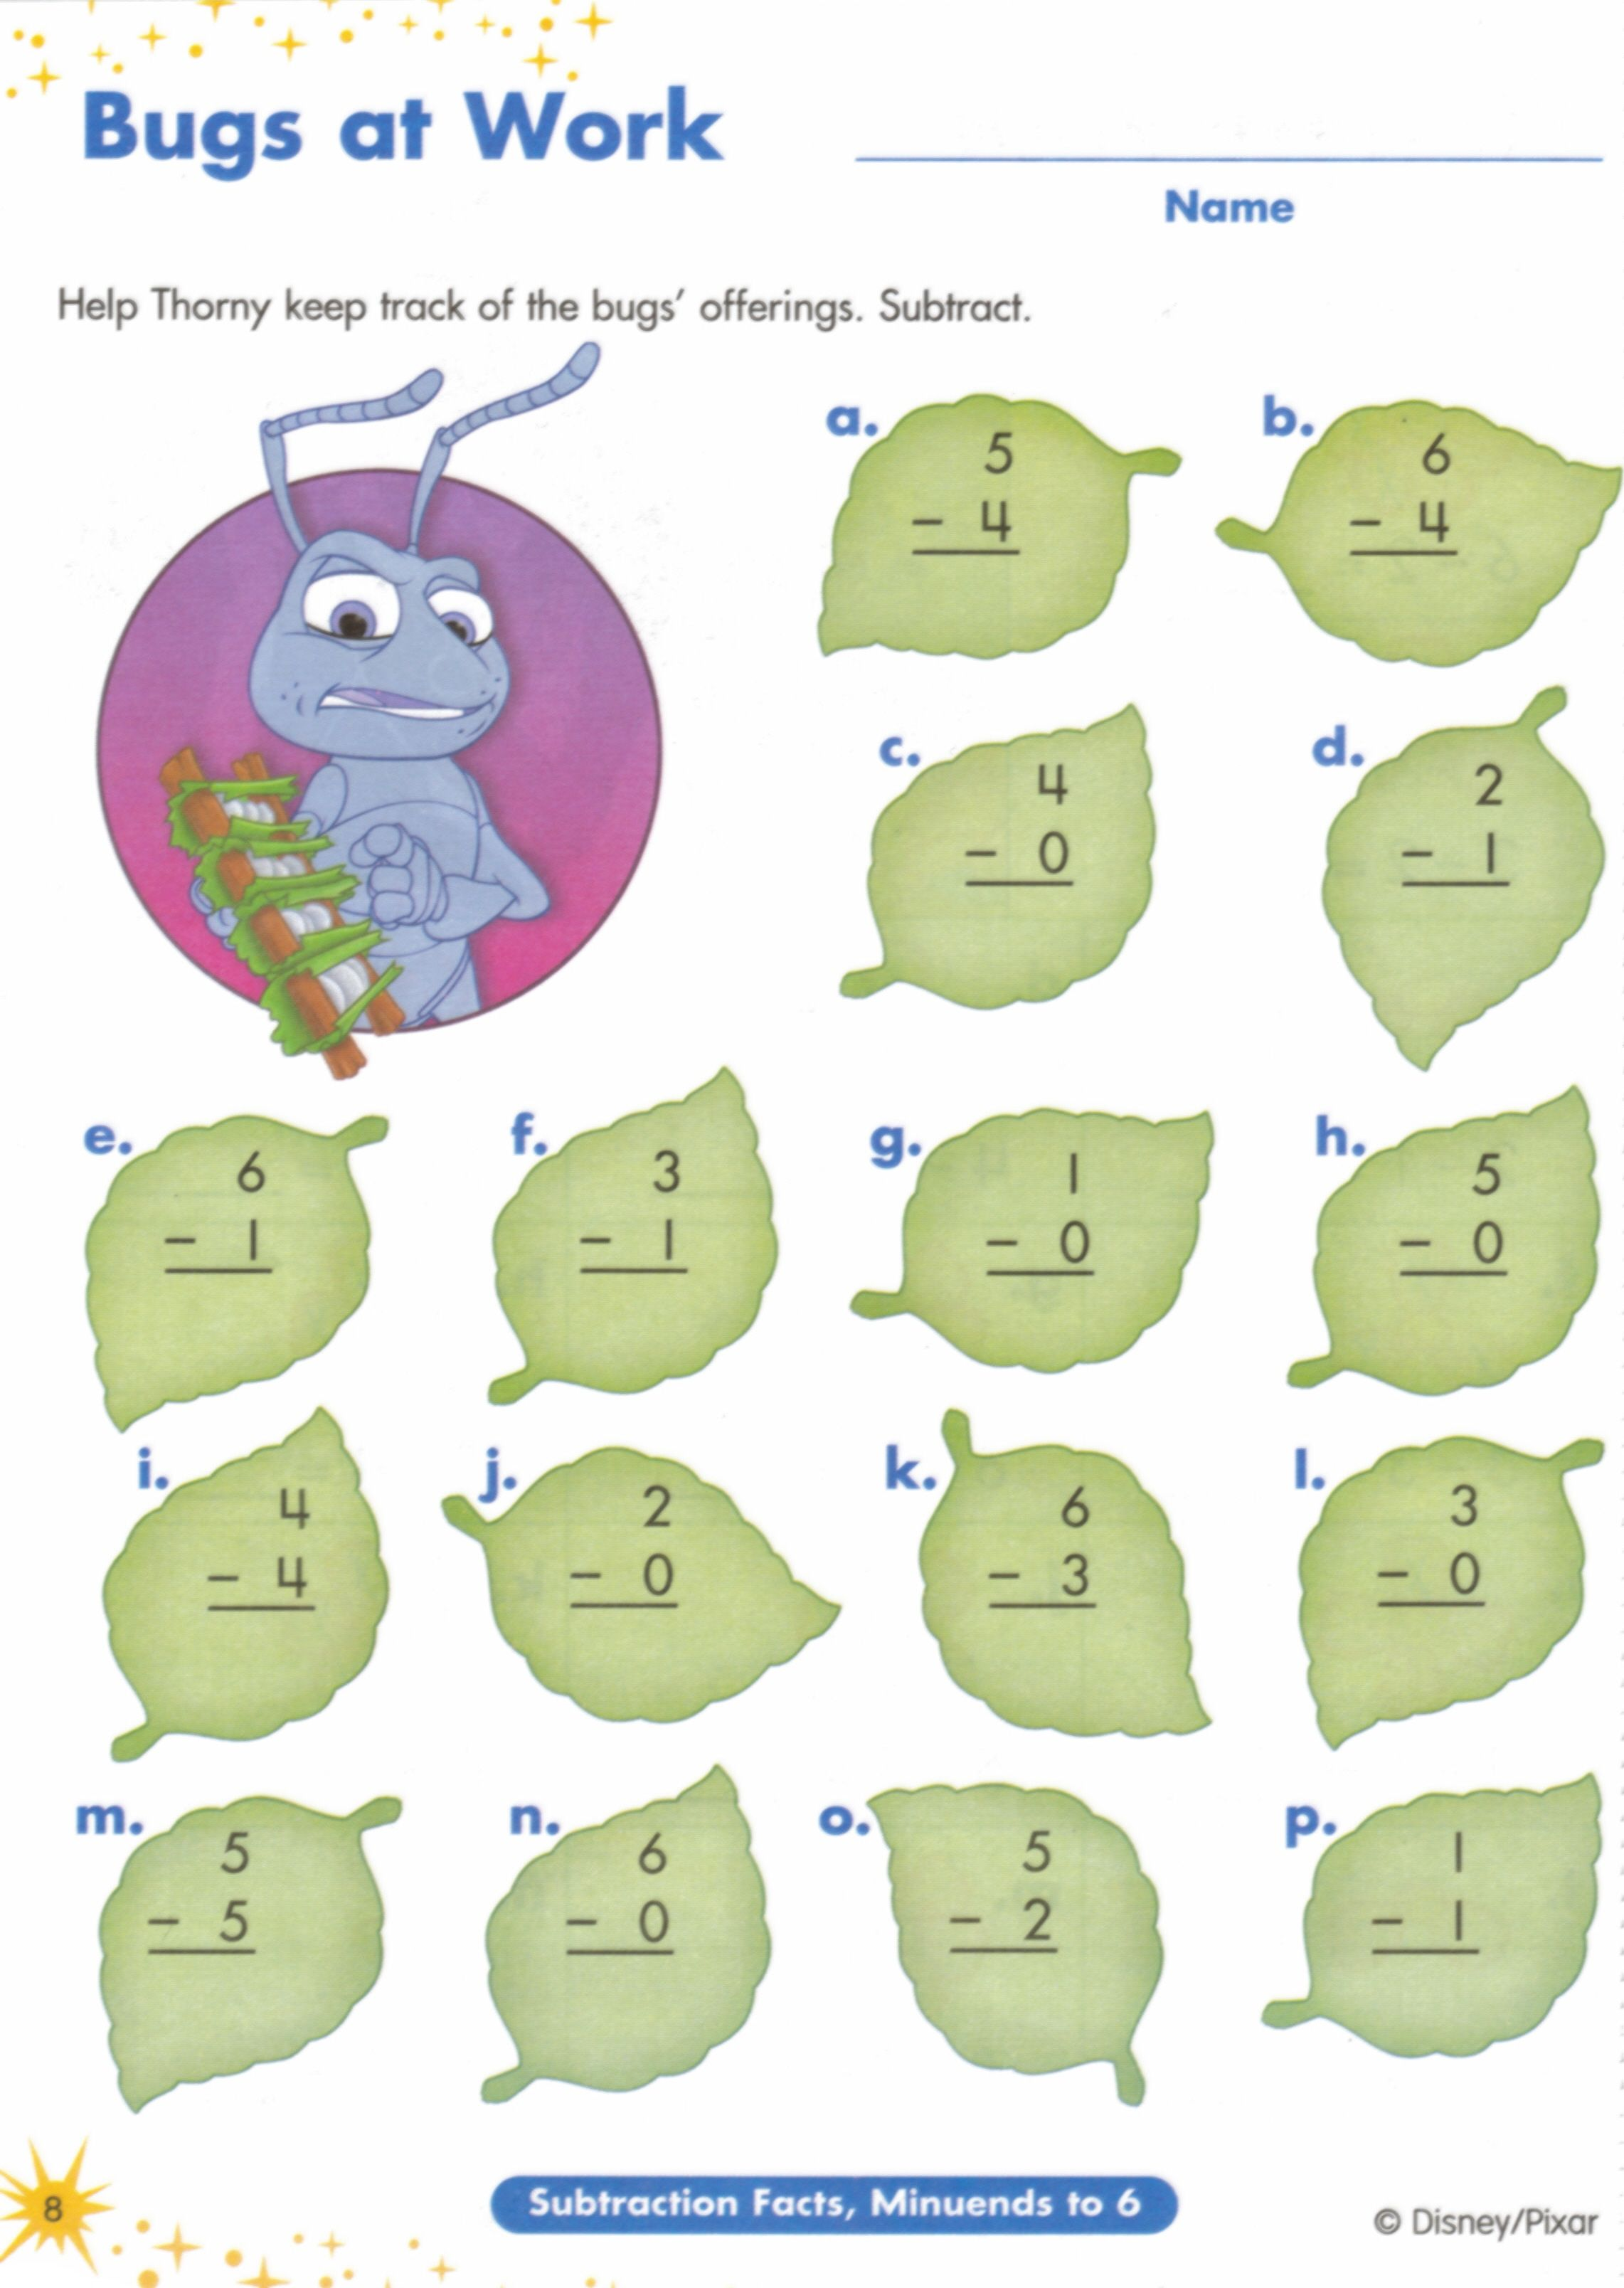 Weirdmailus  Gorgeous  Images About Worksheets On Pinterest  Fun Facts For Kids  With Inspiring  Images About Worksheets On Pinterest  Fun Facts For Kids Earth Day Worksheets And Jungles With Beautiful Convex Mirror Ray Diagram Worksheet Also Methods Of Separating Mixtures Worksheet In Addition Easy Division Worksheets With Pictures And Year  History Worksheets As Well As Writing Decimals In Words Worksheets Additionally Worksheets On Factors And Multiples From Pinterestcom With Weirdmailus  Inspiring  Images About Worksheets On Pinterest  Fun Facts For Kids  With Beautiful  Images About Worksheets On Pinterest  Fun Facts For Kids Earth Day Worksheets And Jungles And Gorgeous Convex Mirror Ray Diagram Worksheet Also Methods Of Separating Mixtures Worksheet In Addition Easy Division Worksheets With Pictures From Pinterestcom